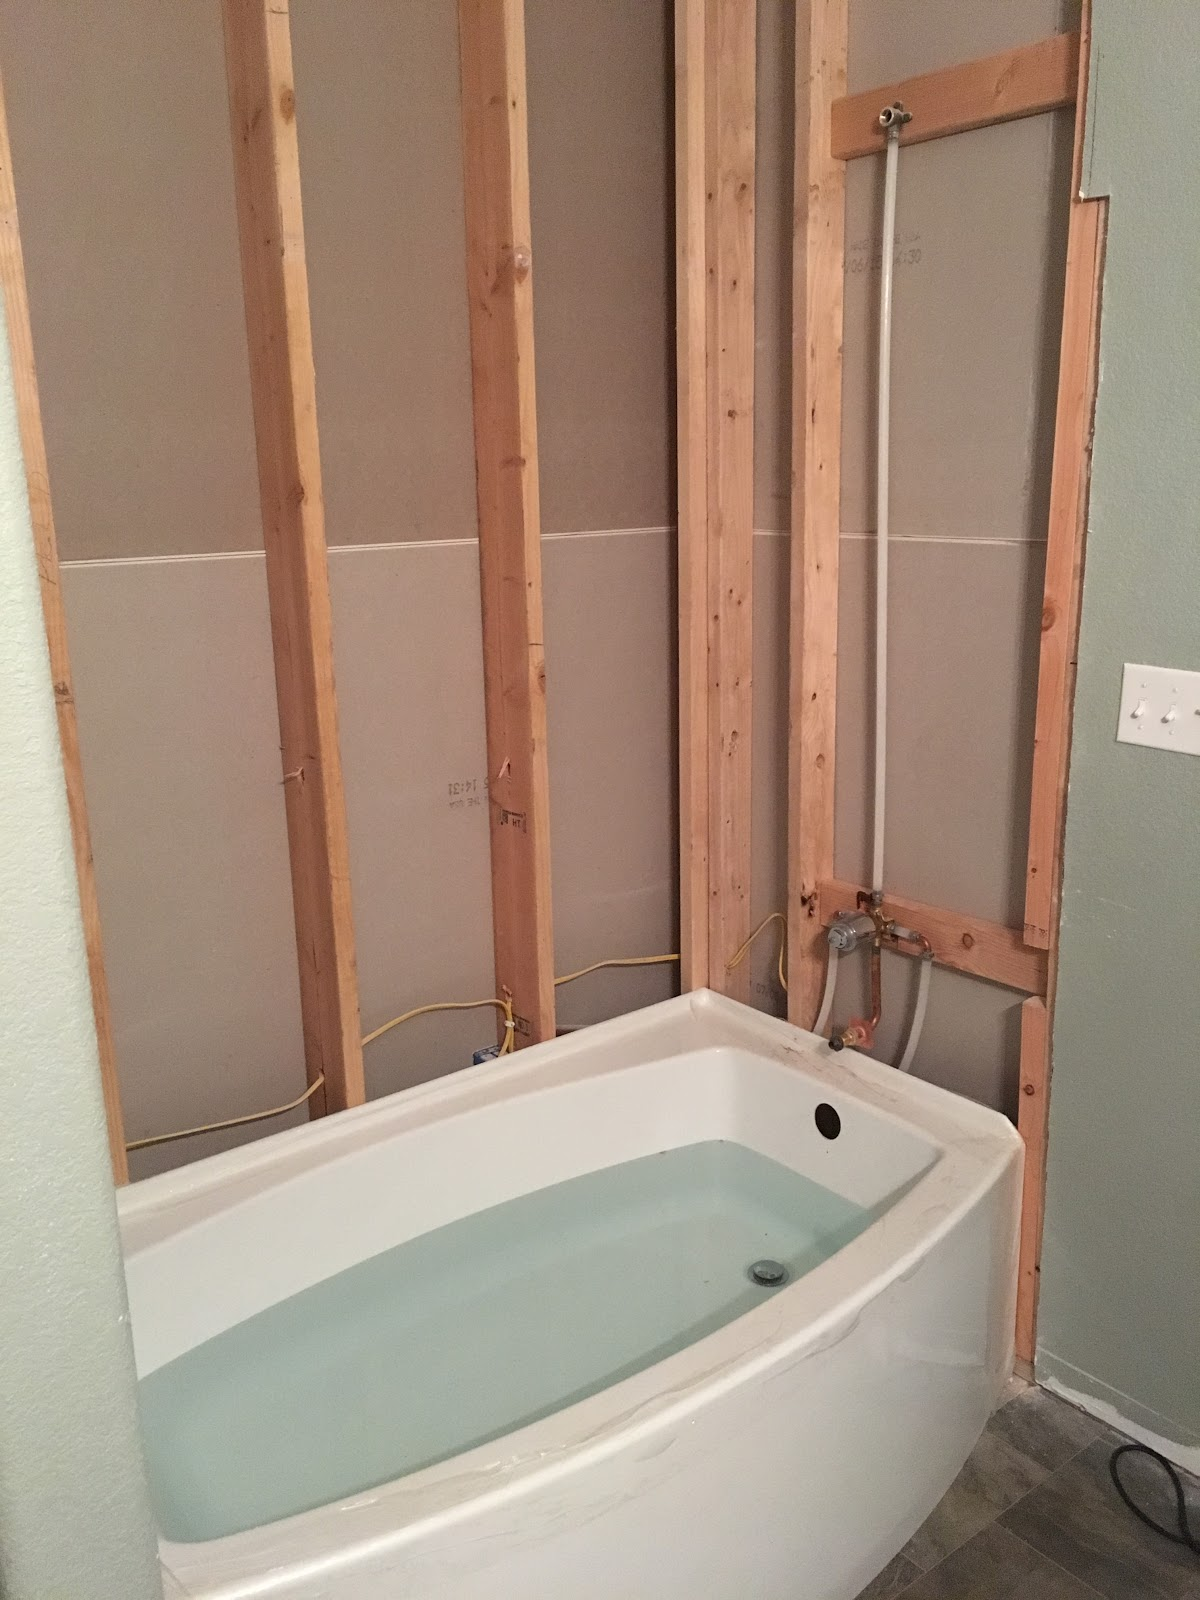 John Carter : I HATE my shower/bathtub insert... Can you relate?